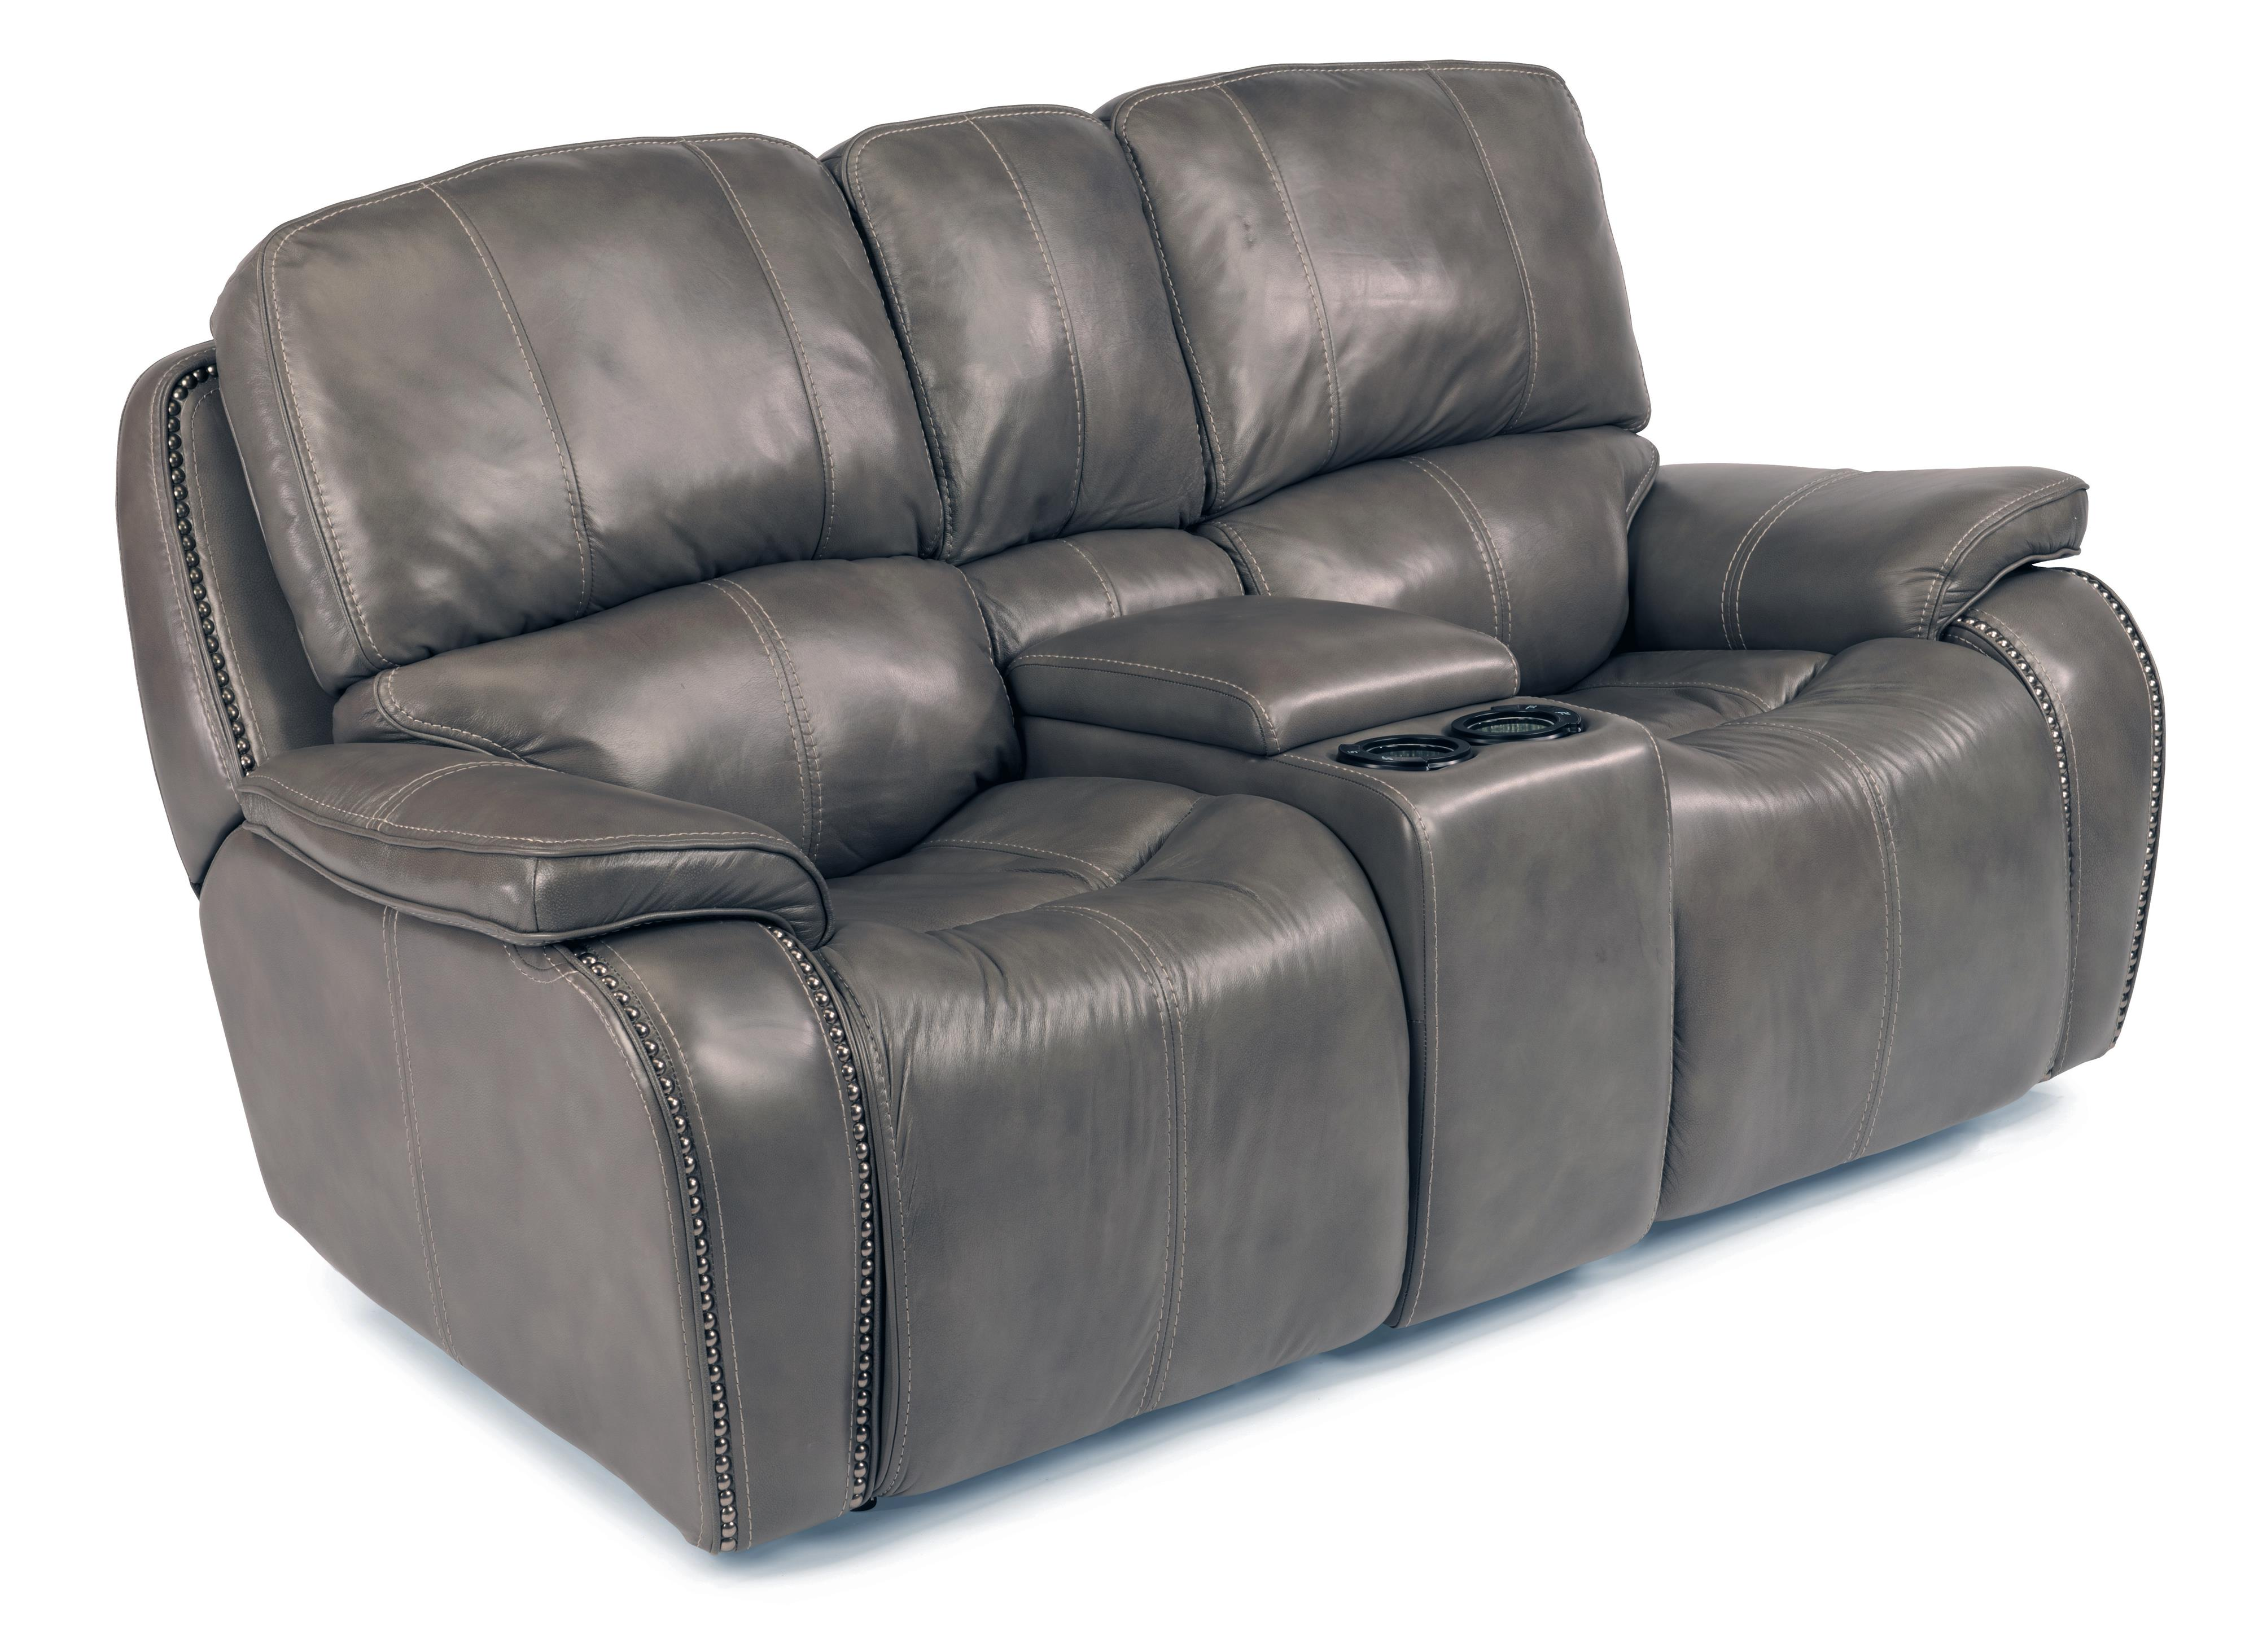 Power Reclining Loveseat With Storage And Light Up Cupholder Console